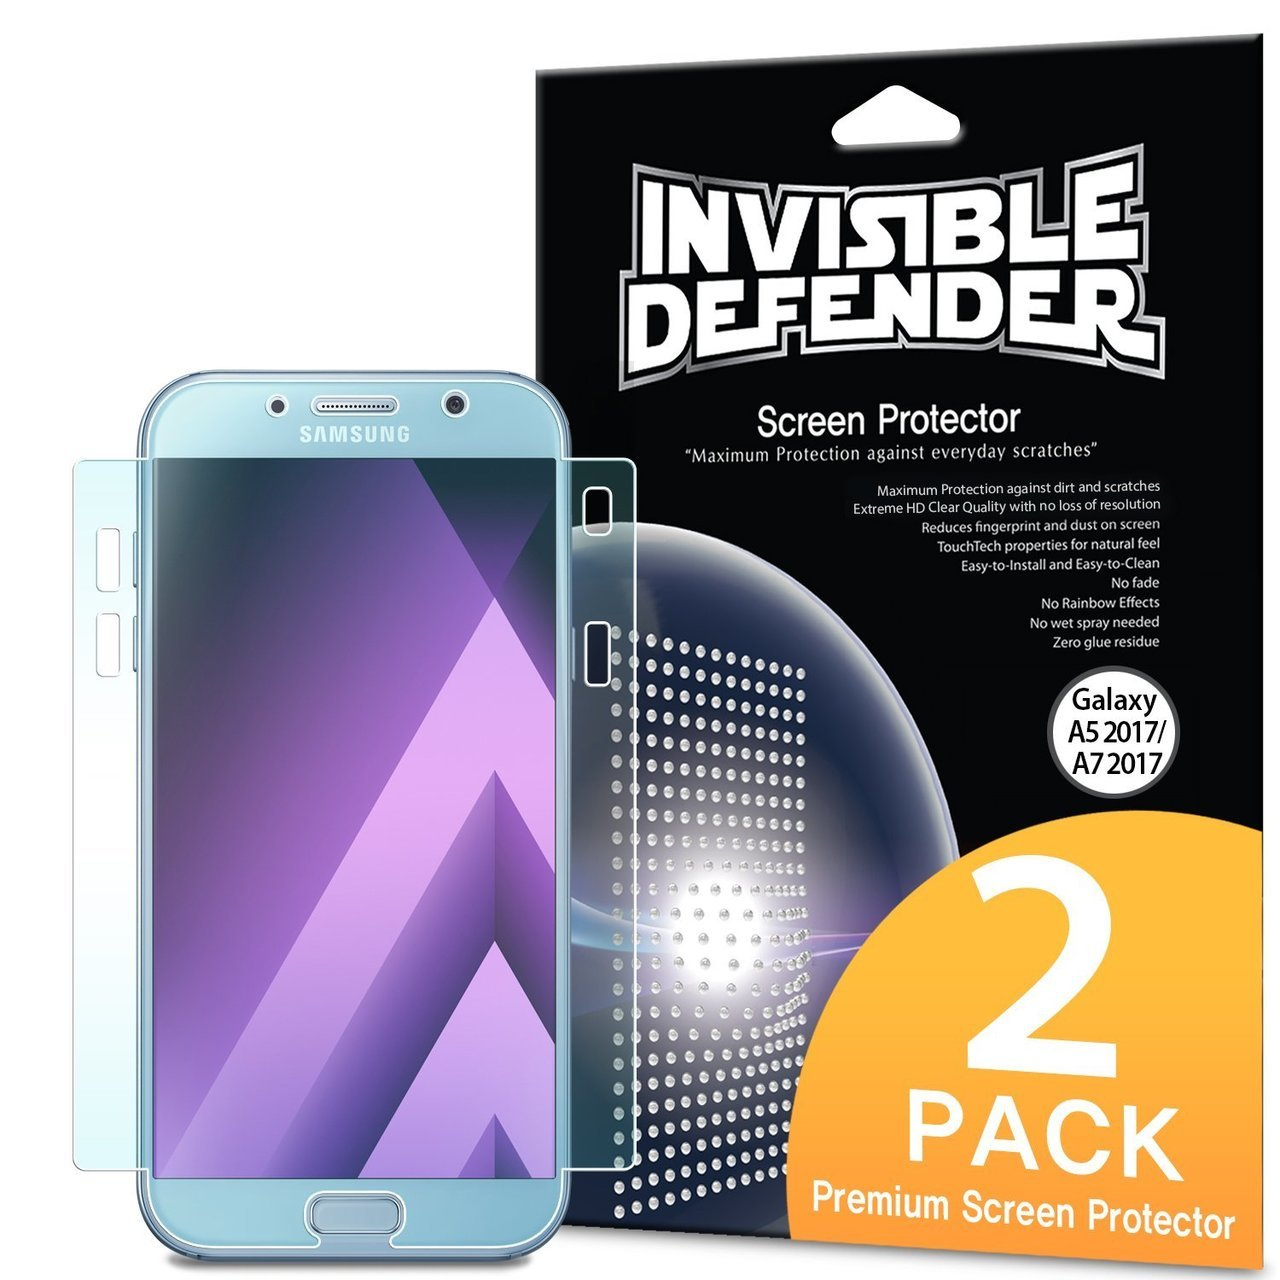 Samsung Galaxy A7 2017 Full Coverage Protector RIngke Invisible Defender